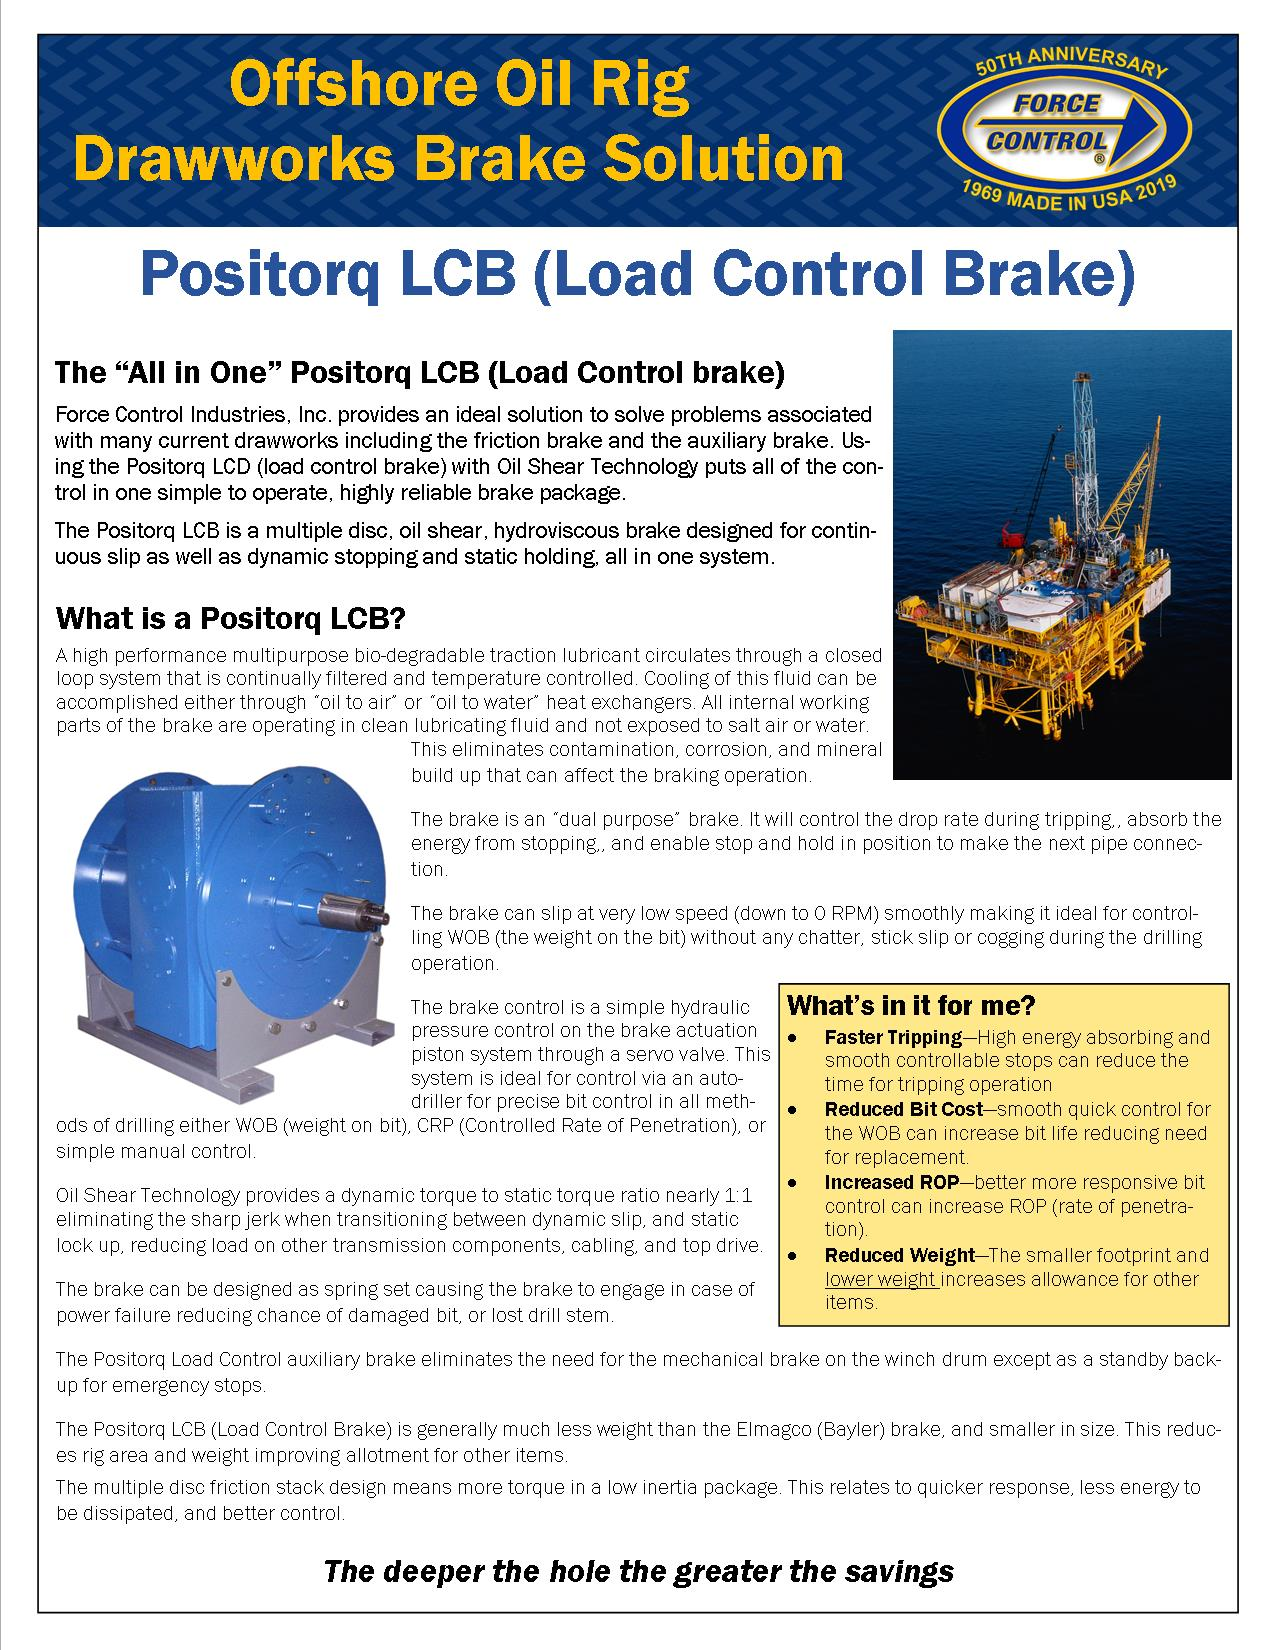 Drawworks LCB Positorq Brake . Trip, Stop, Drill all with one brake.